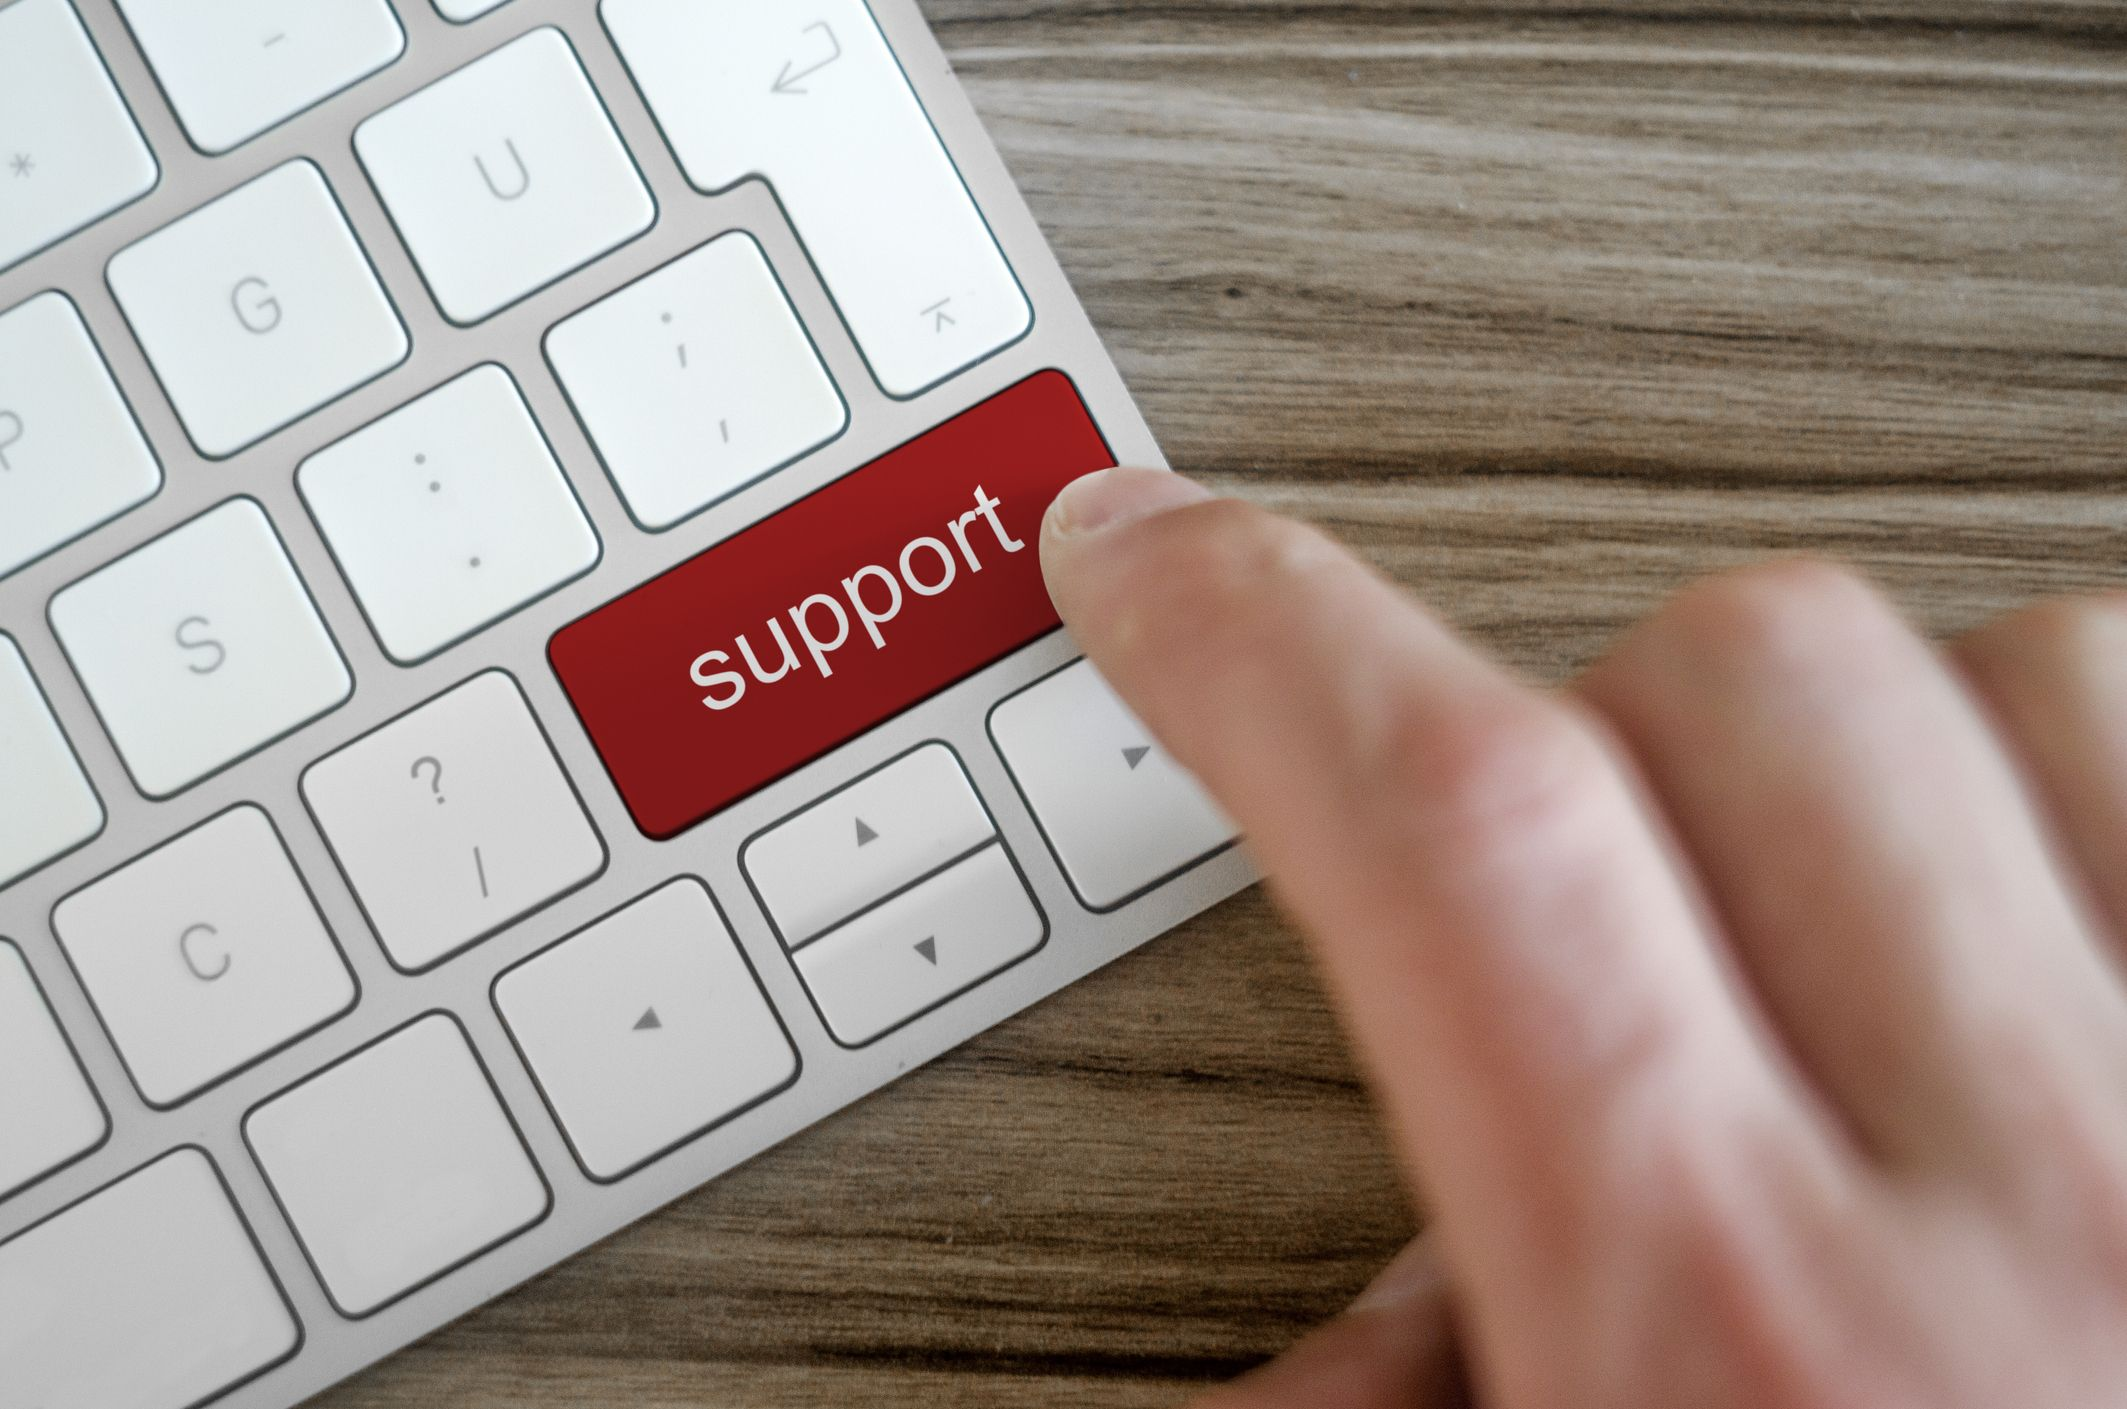 desktop & server support secondary image - support button on keyboard